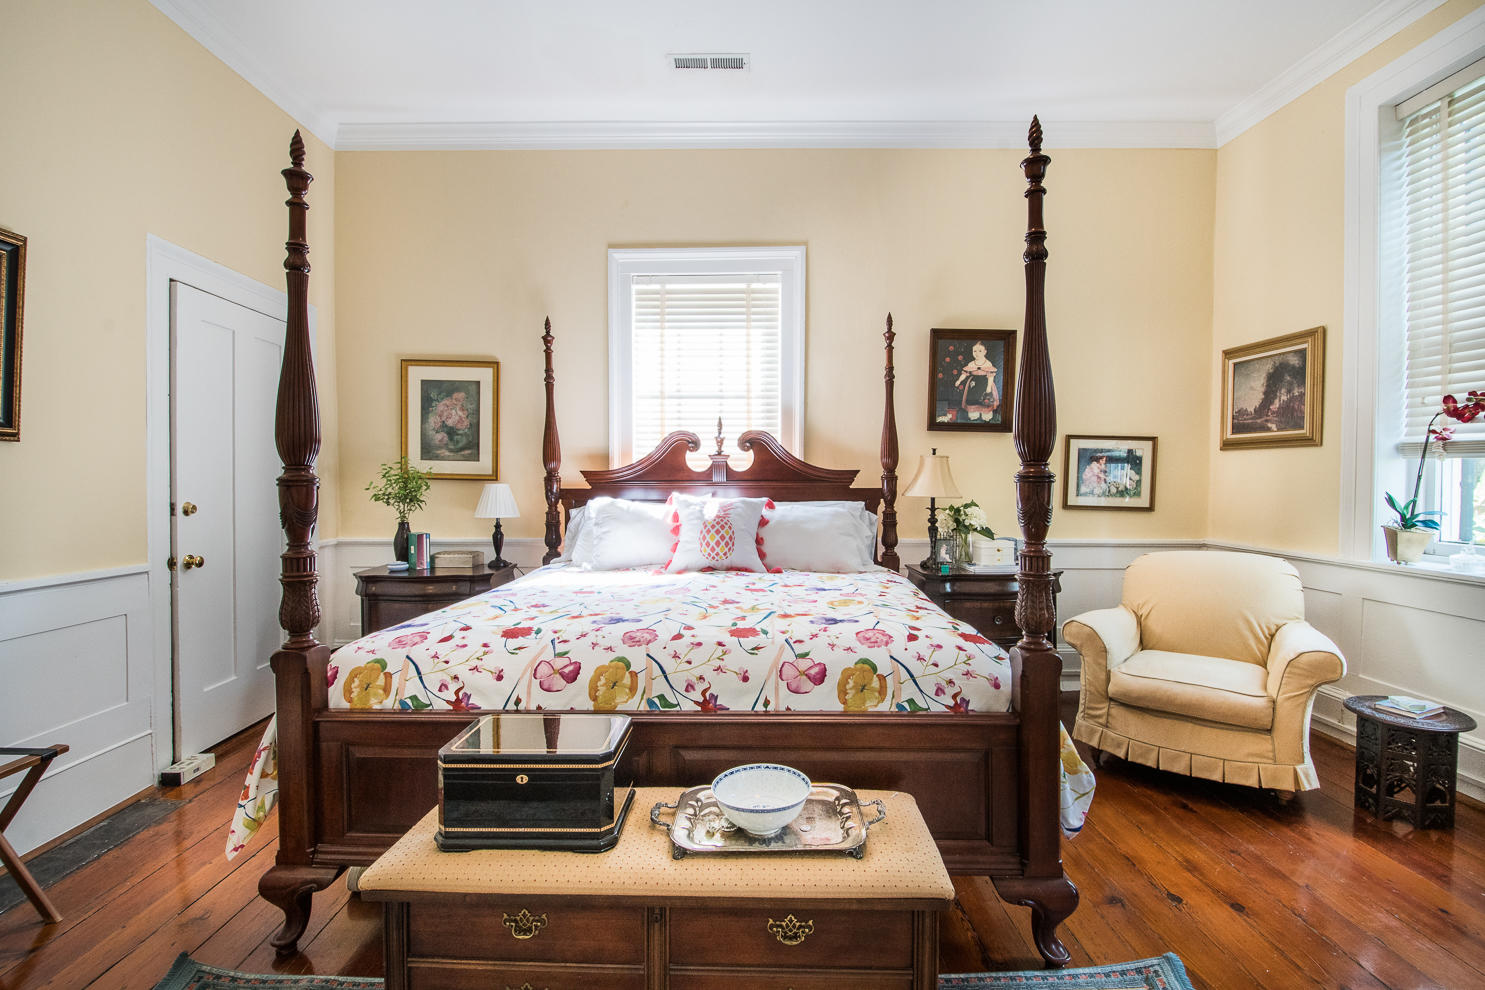 South of Broad Homes For Sale - 1 Prices, Charleston, SC - 38